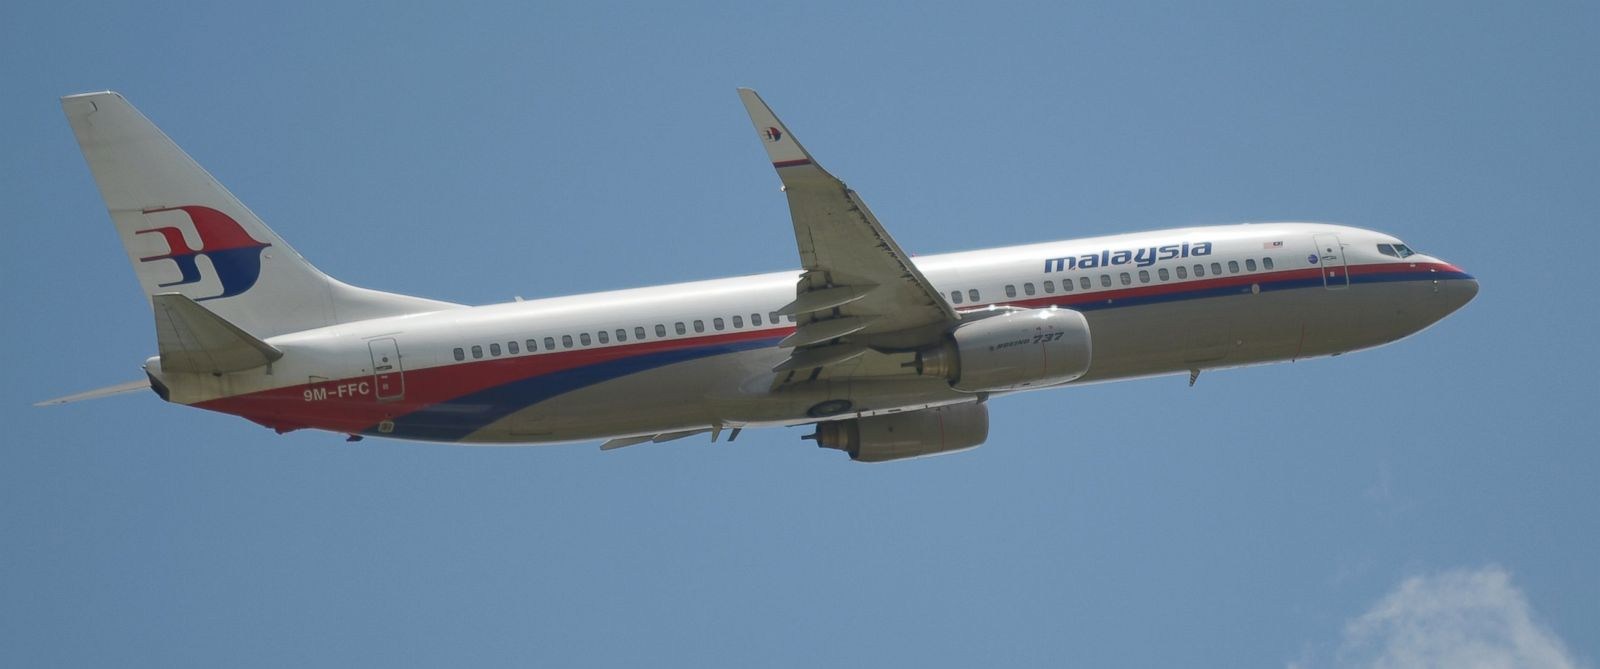 PHOTO: This March 18, 2013 file photo shows a Malaysia Airlines Boeing 737 plane flying over the Sukarno-Hatta airport in Tangerang, Indonesia.